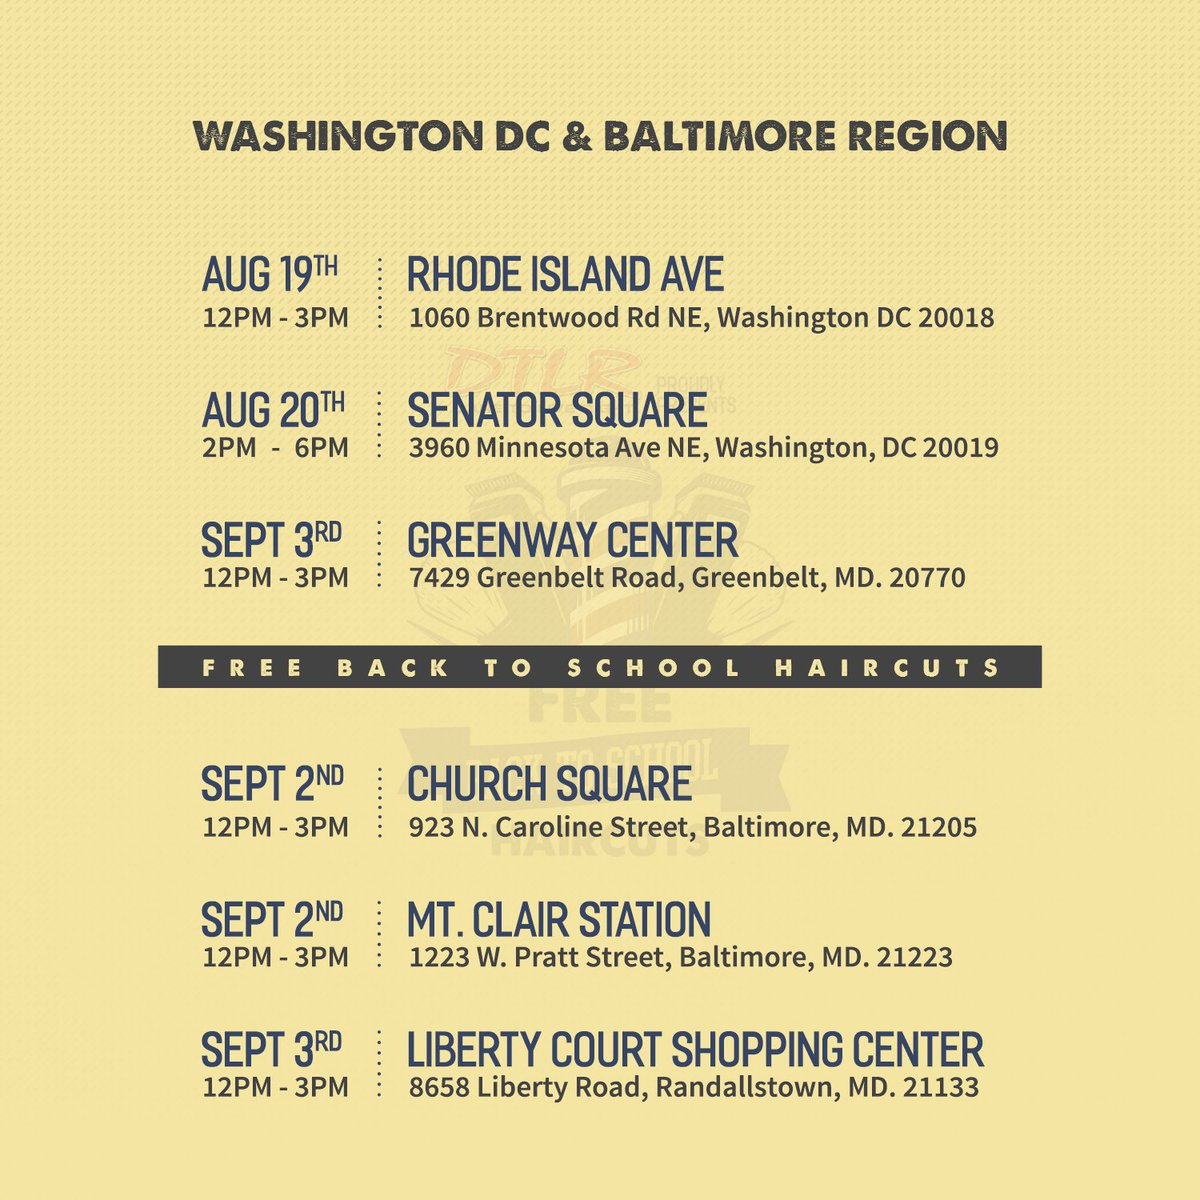 #DC & #MD Be sure to bring the kids by #DTLR for a #FREE haircut 6 Locations | 4 Dates #Daretoliveright #Back2School #Haircuts #Community https://t.co/eAa731KUny